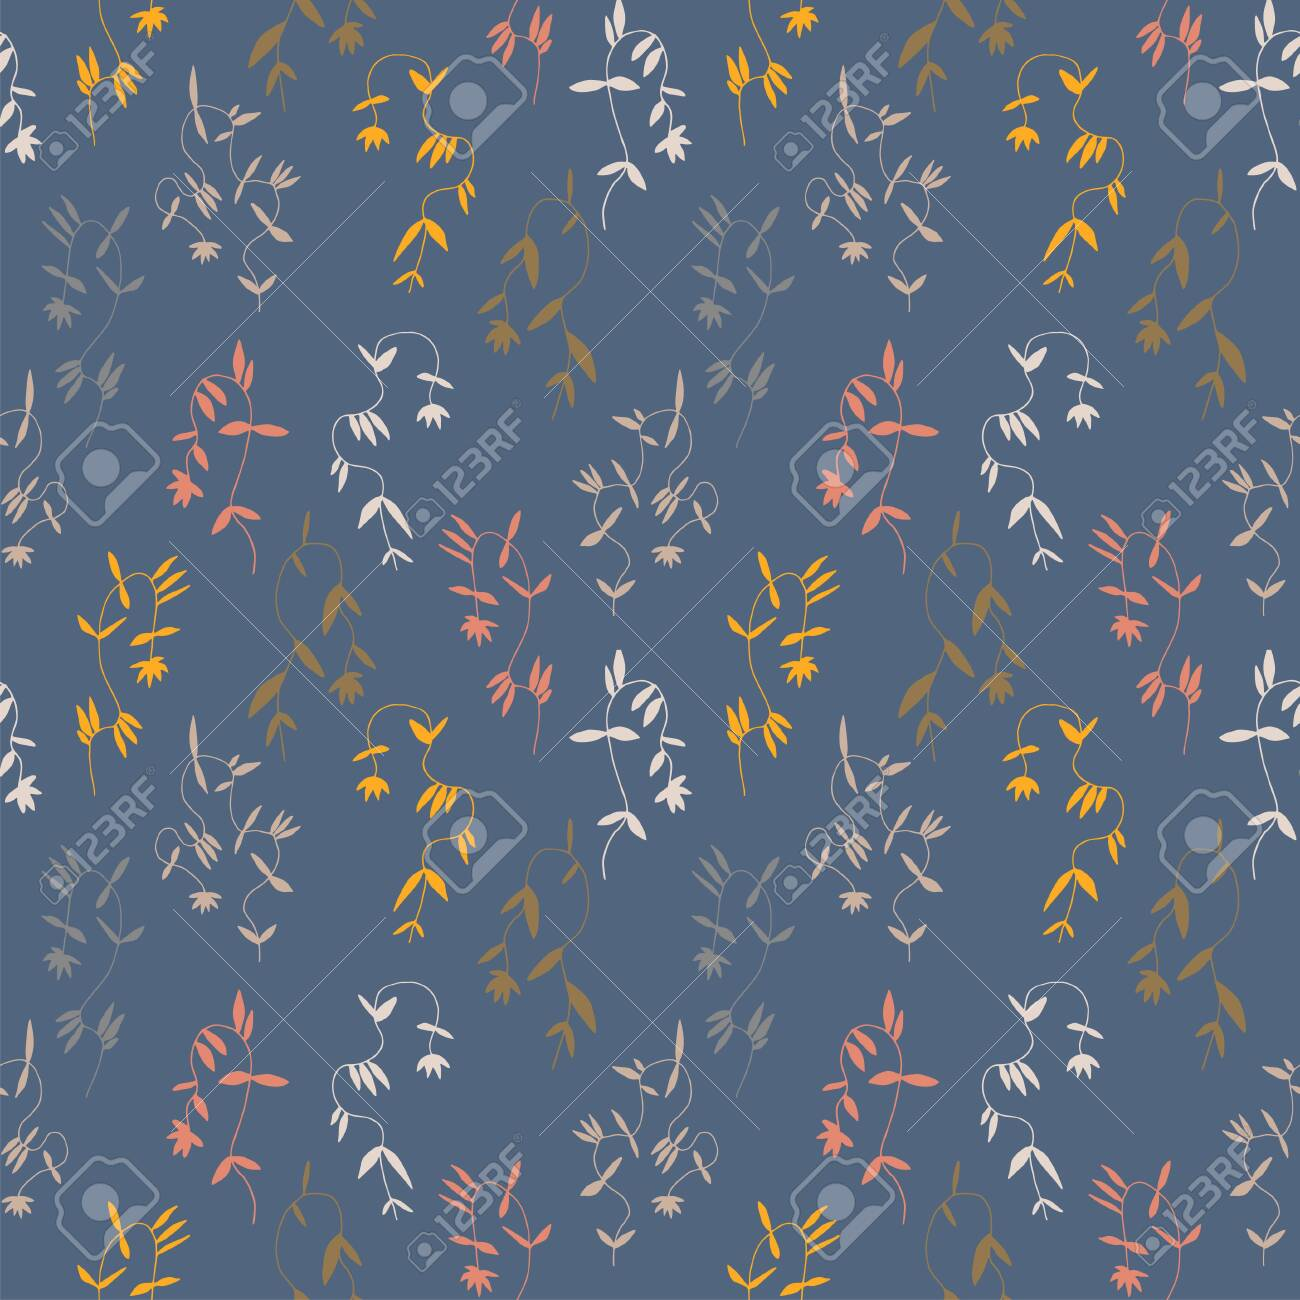 Little Flower Seamless Pattern In Vintage Scandinavian Minimalism Royalty Free Cliparts Vectors And Stock Illustration Image 145332191